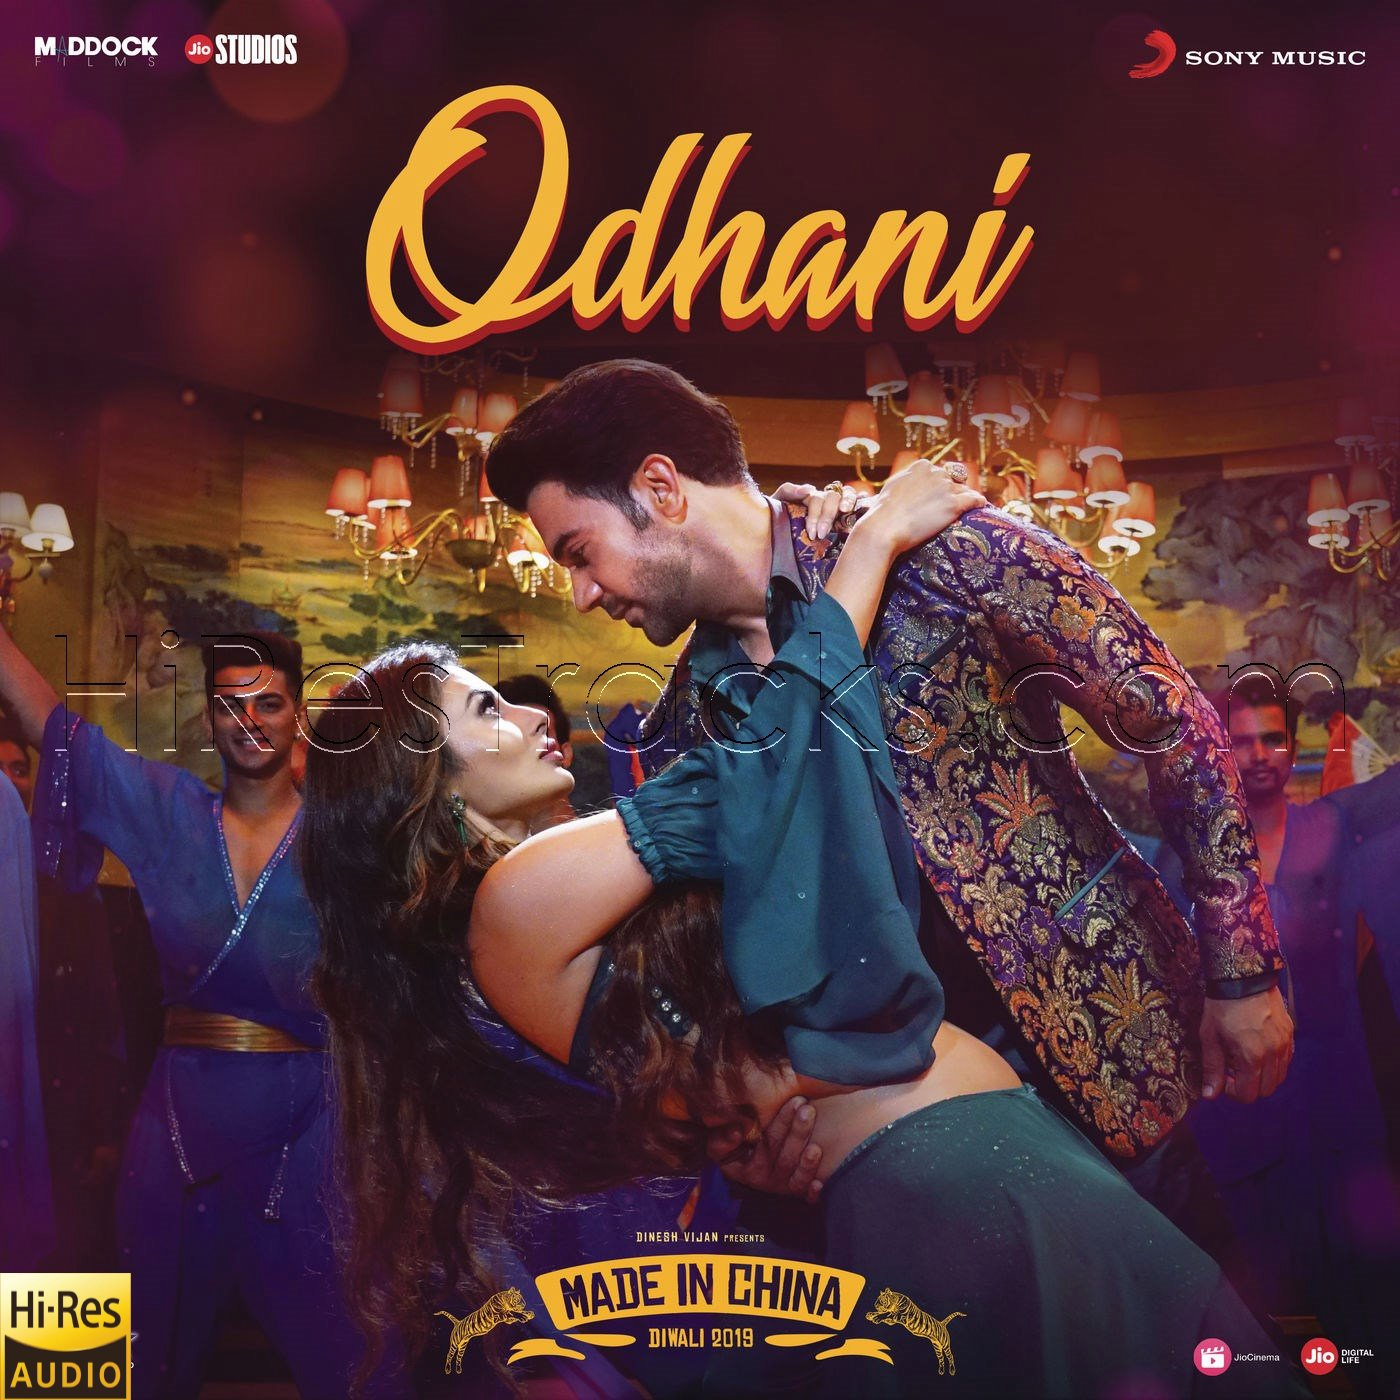 Odhani (From Made in China) (2019) (Sachin-Jigar) (Sony Music) [24 BIT – 96 KHZ] [Digital-RIP-FLAC]